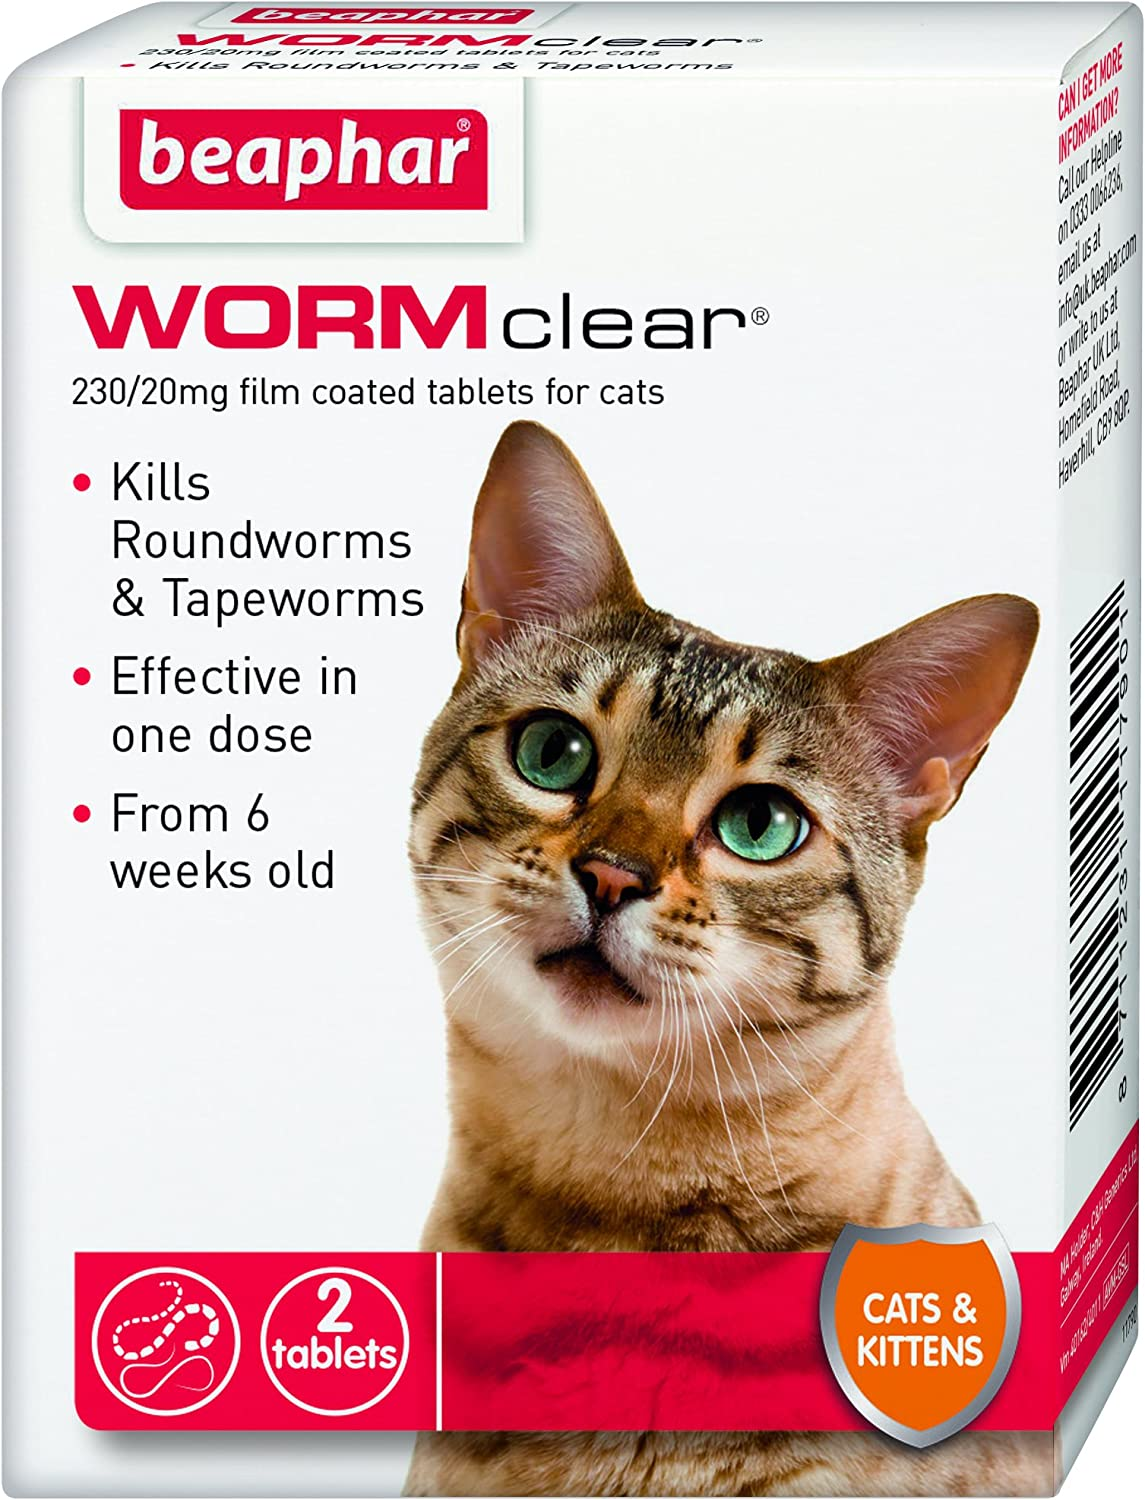 Beaphar Max 75% OFF WORMclear for trend rank Cats and Kittens